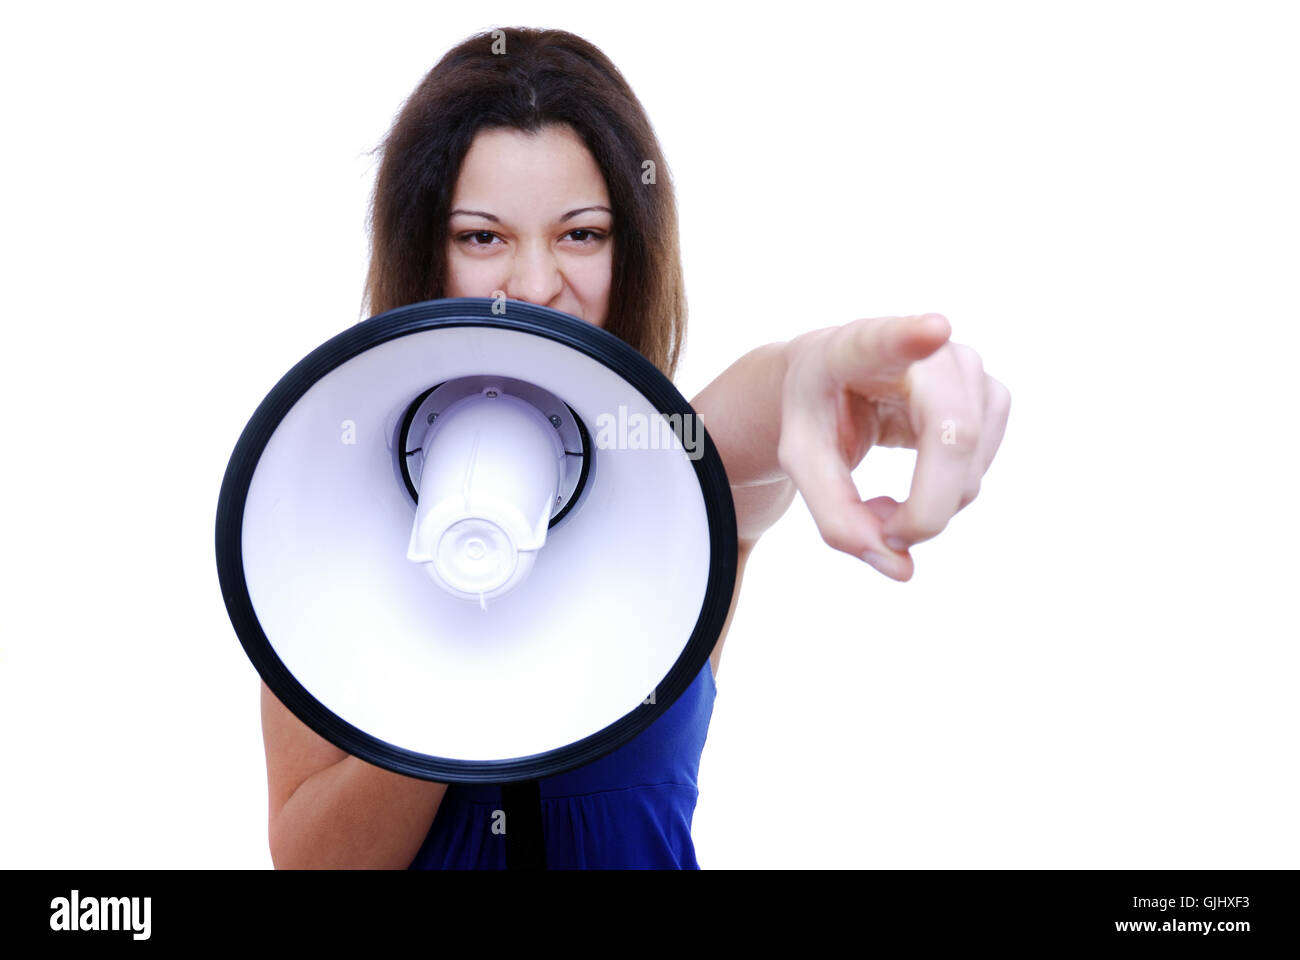 loudly - Stock Image